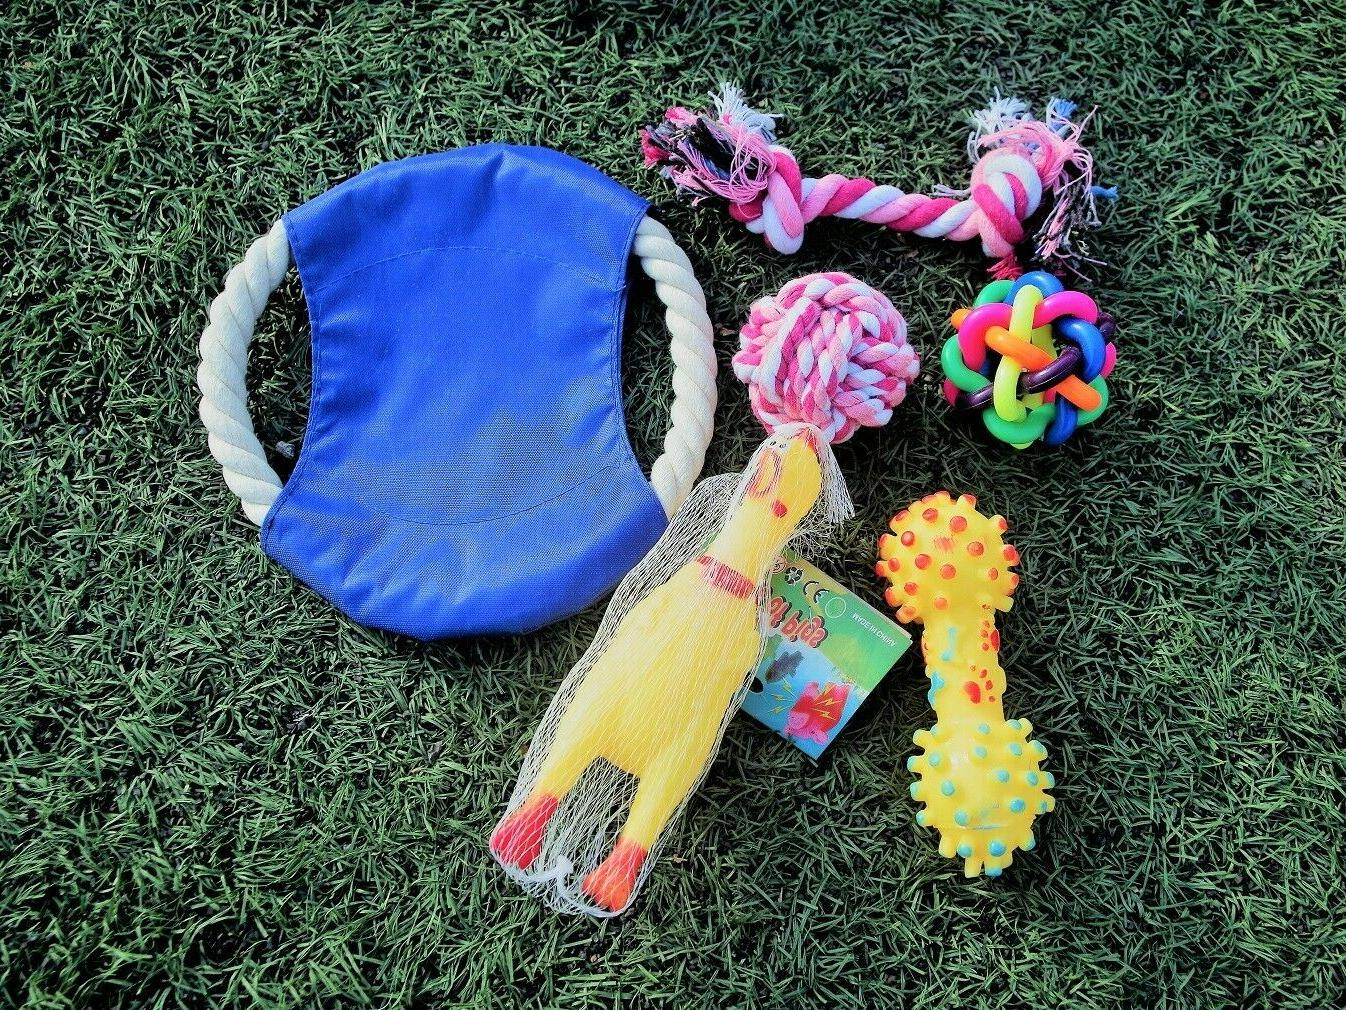 Chew and Squeaky Toys Puppy and Dog. 6 pcs inside